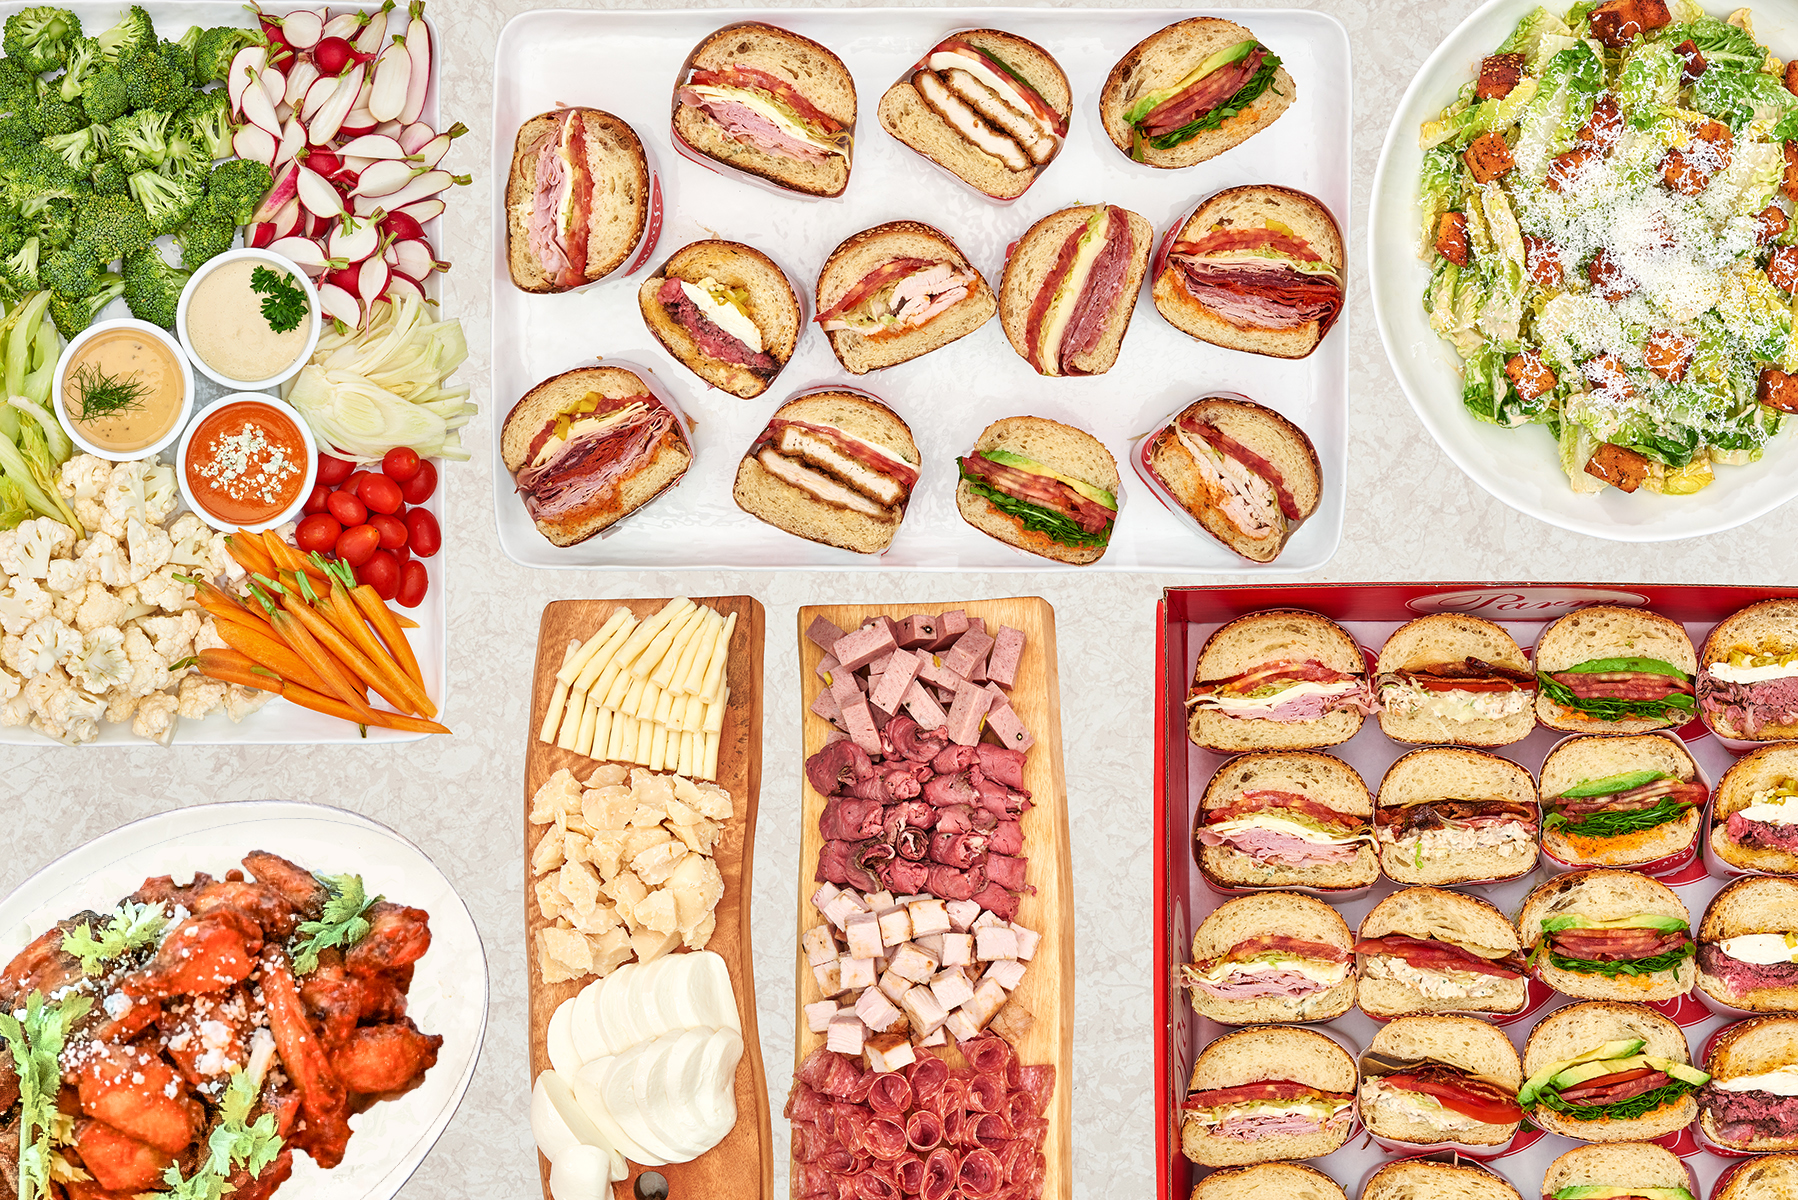 10 touchdown-worthy tailgating packages for Super Bowl Sunday